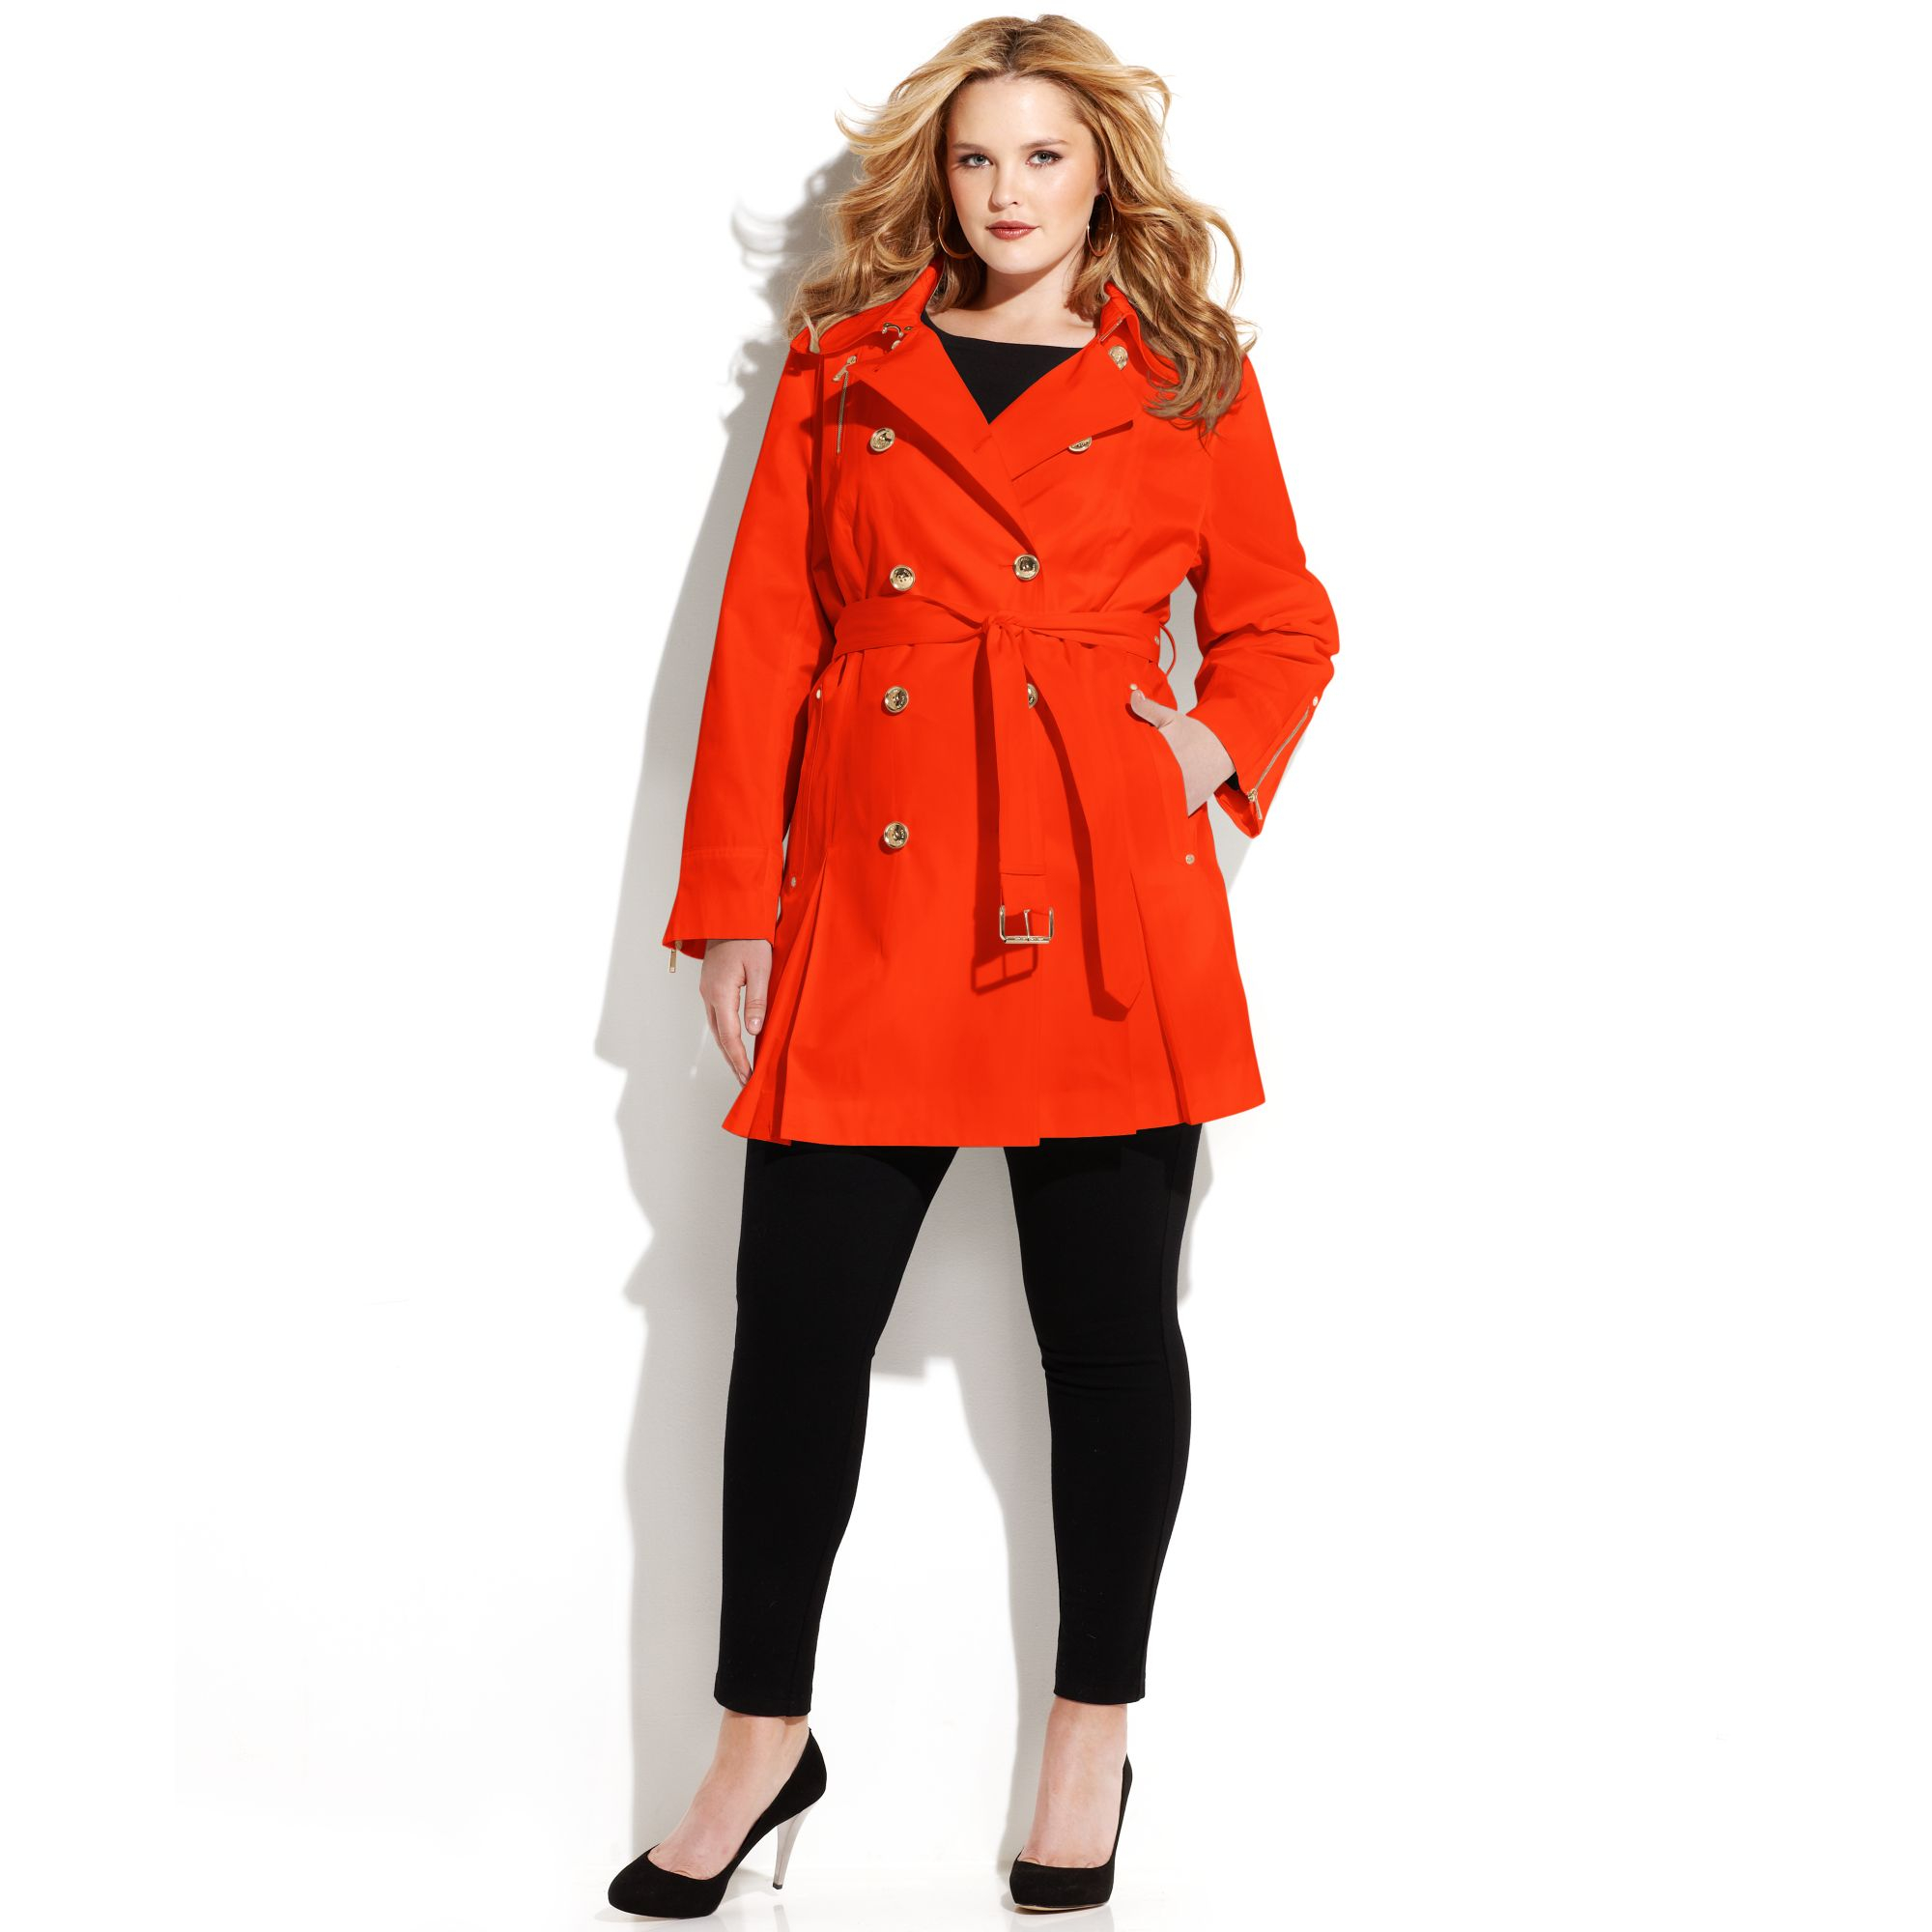 Michael kors Plus Size Double Breasted Belted Trench Coat in Red ...